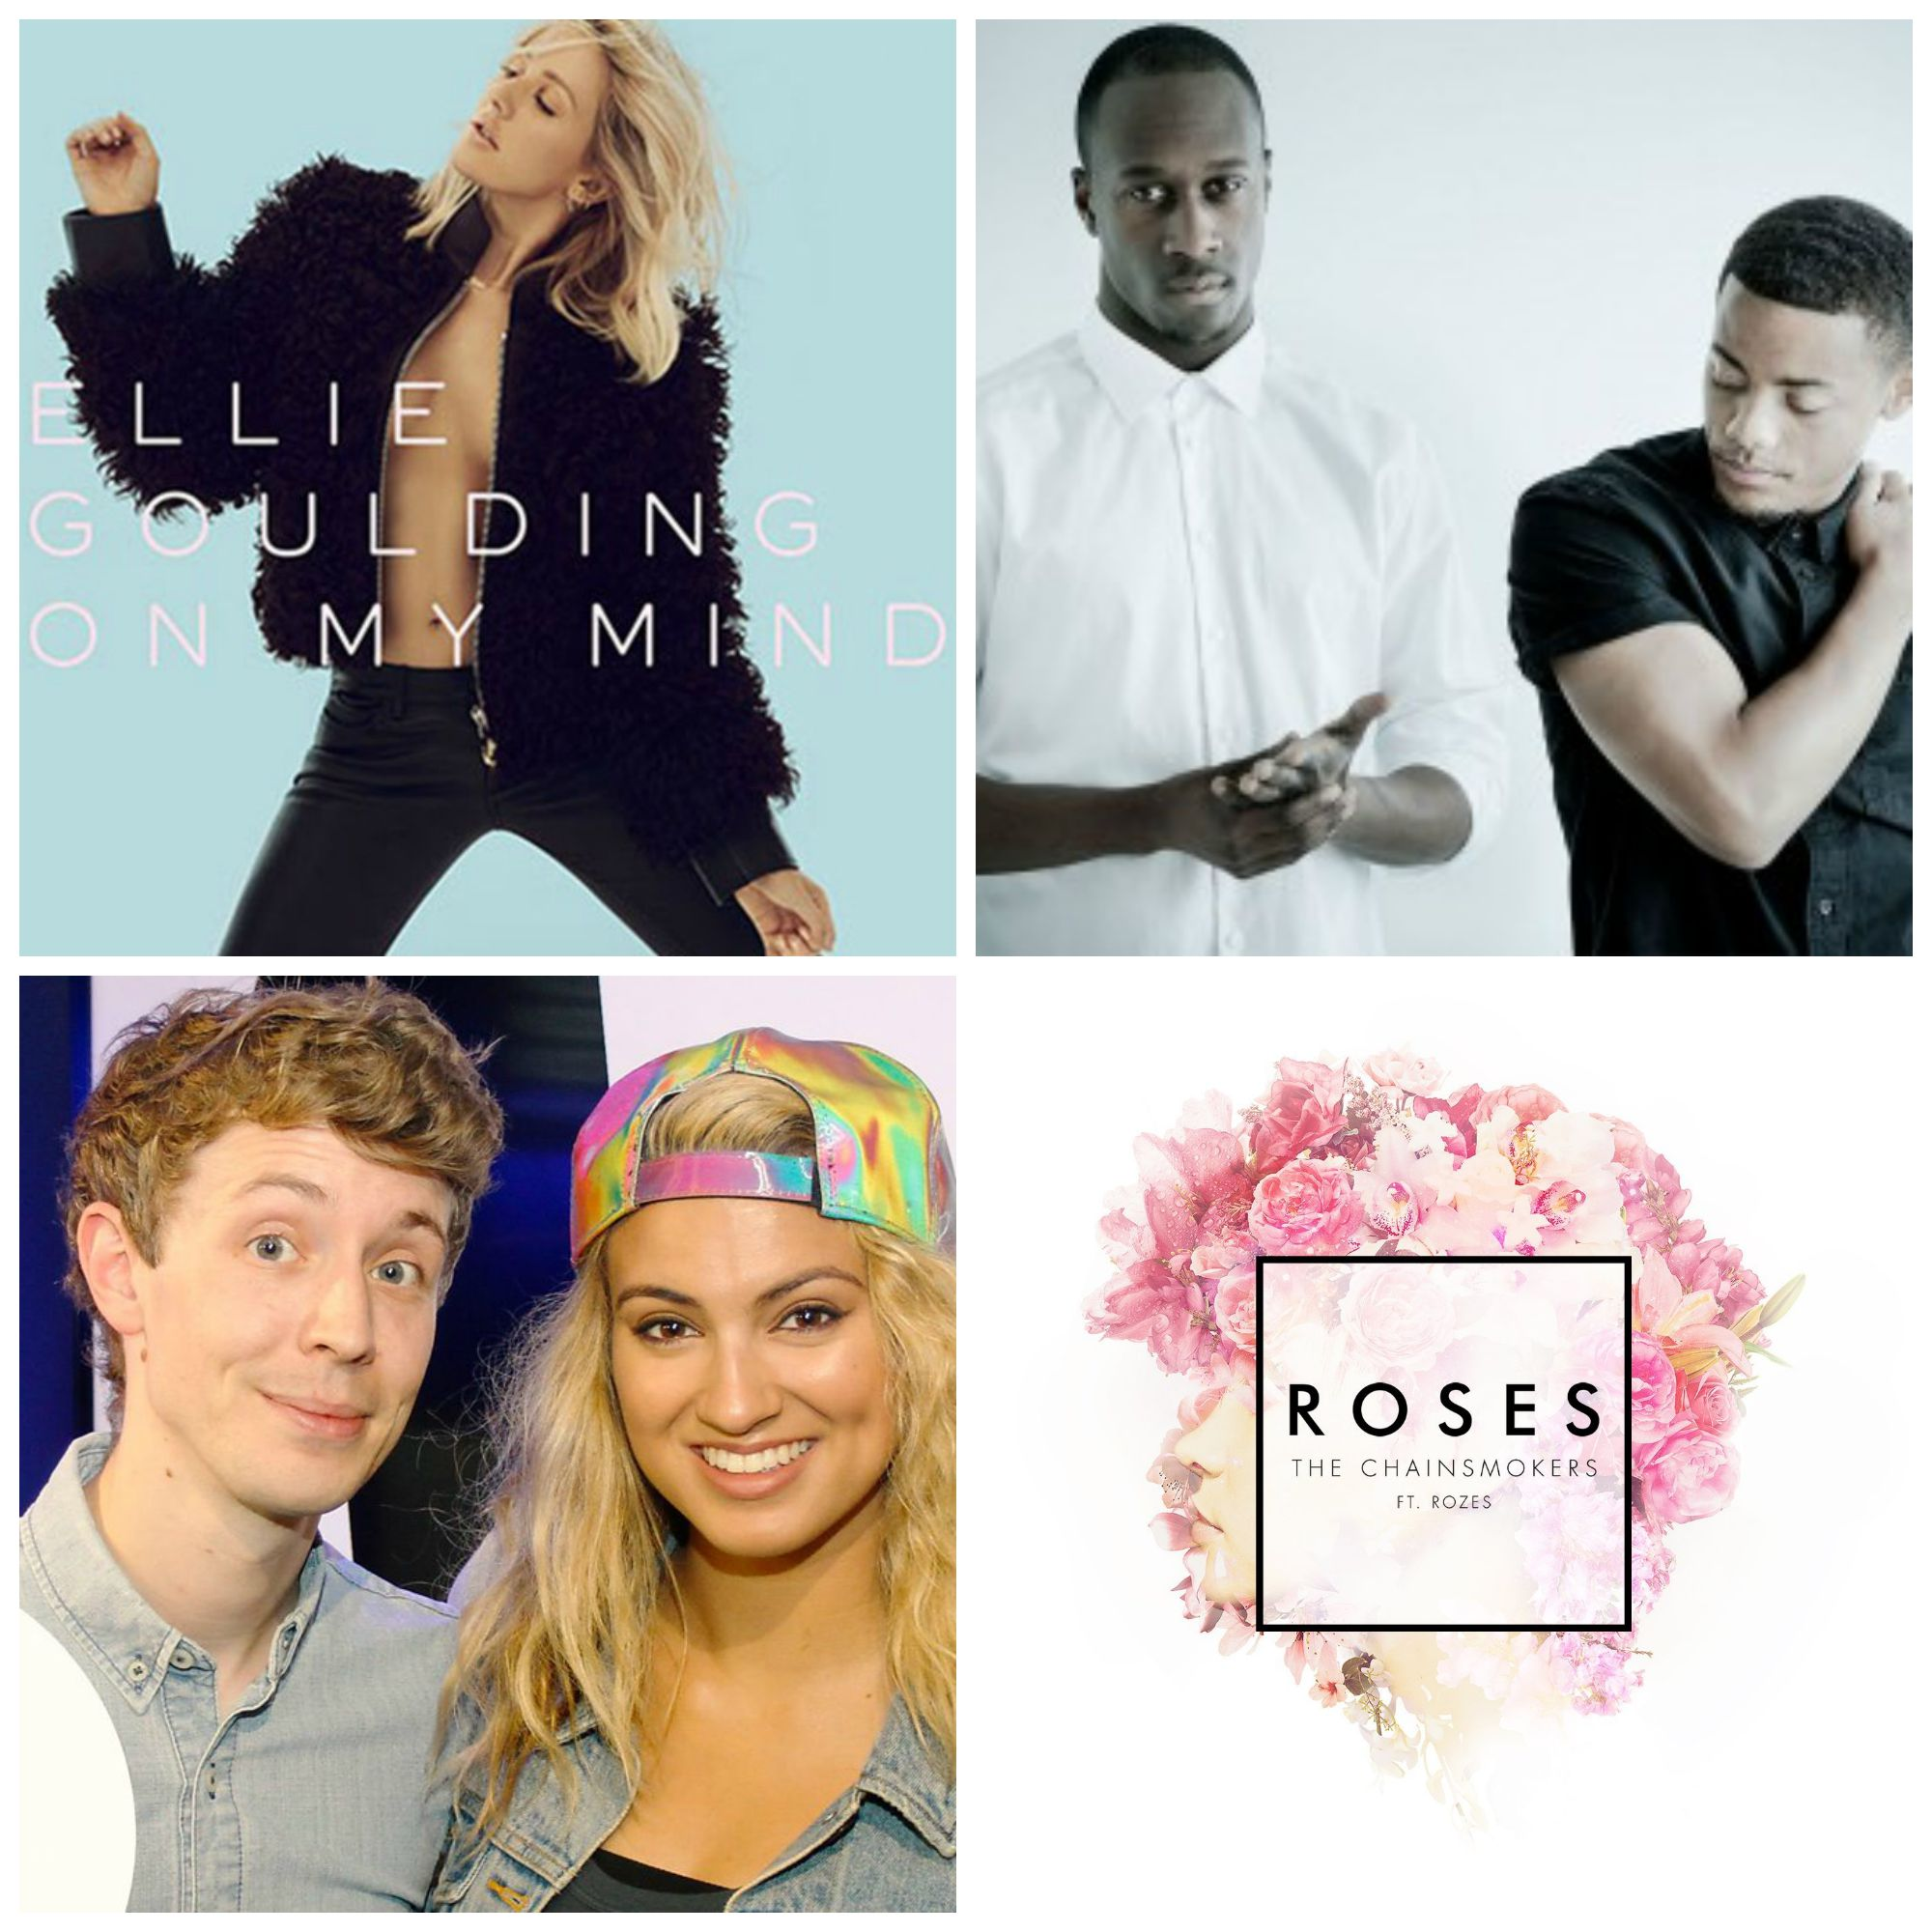 Rae's Raves: Tori Kelly Sings Awful Songs, Nico & Vinz Are Broke and More!